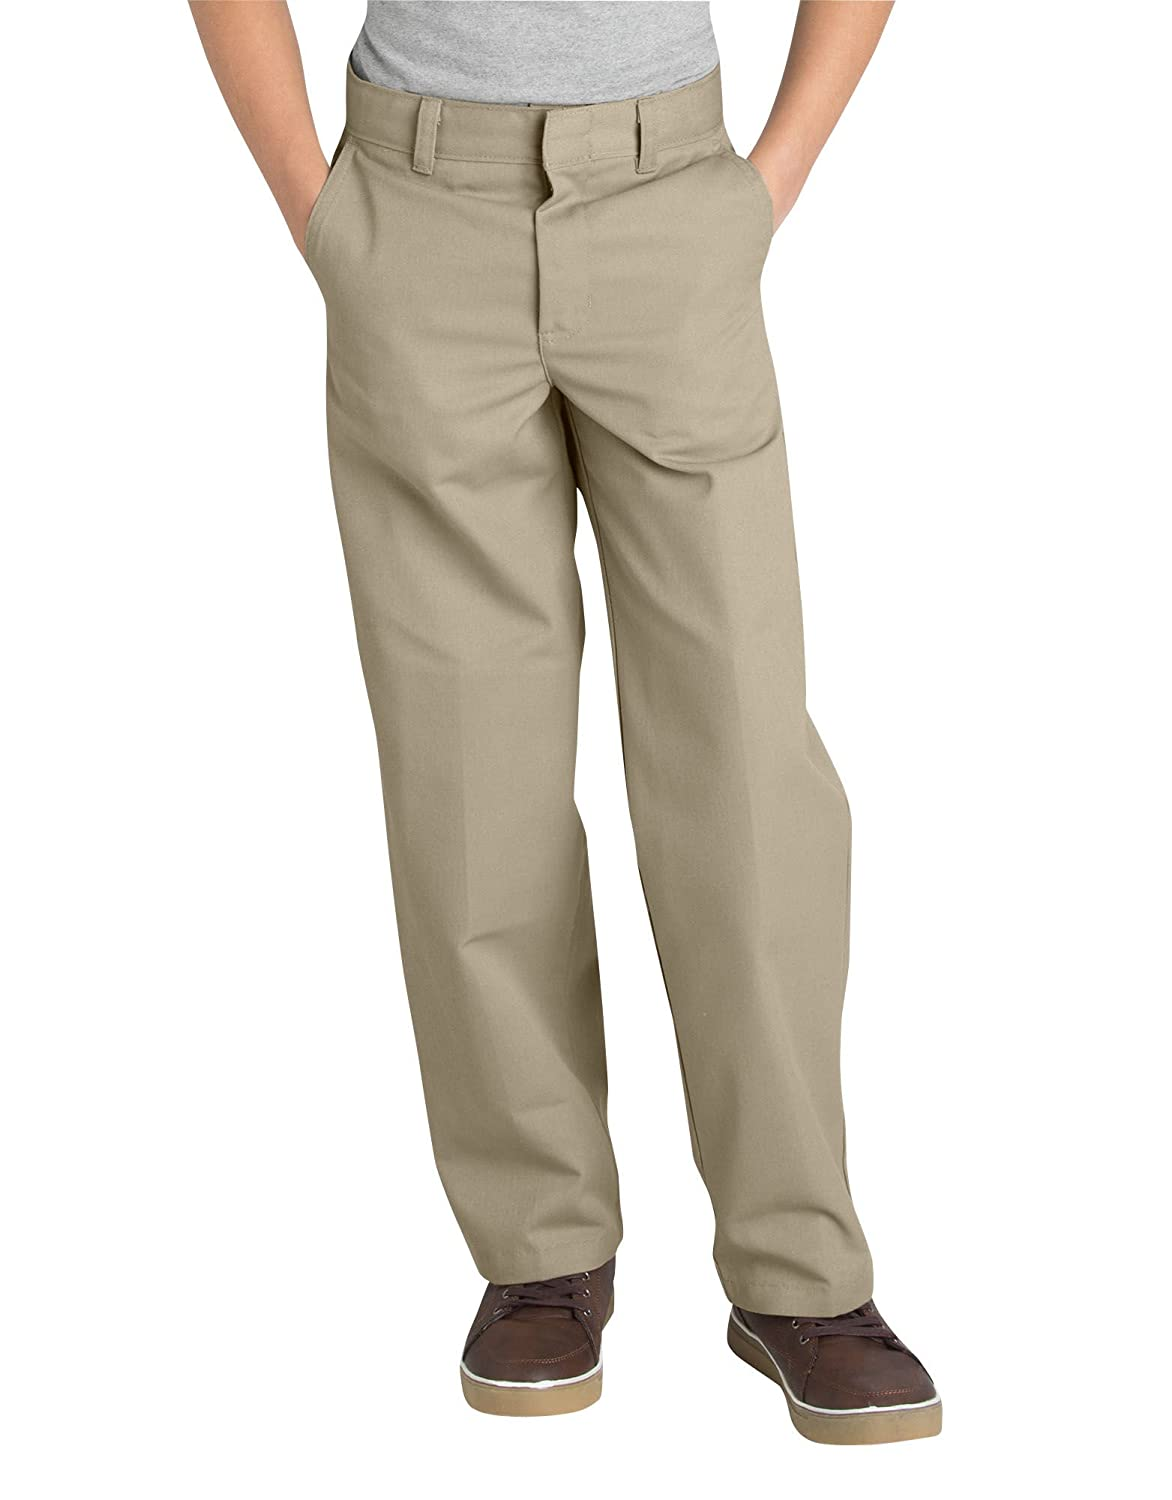 Dickies Boys' Flex Waist Flat Front Pant Dickies Boys 8-20 KP0123